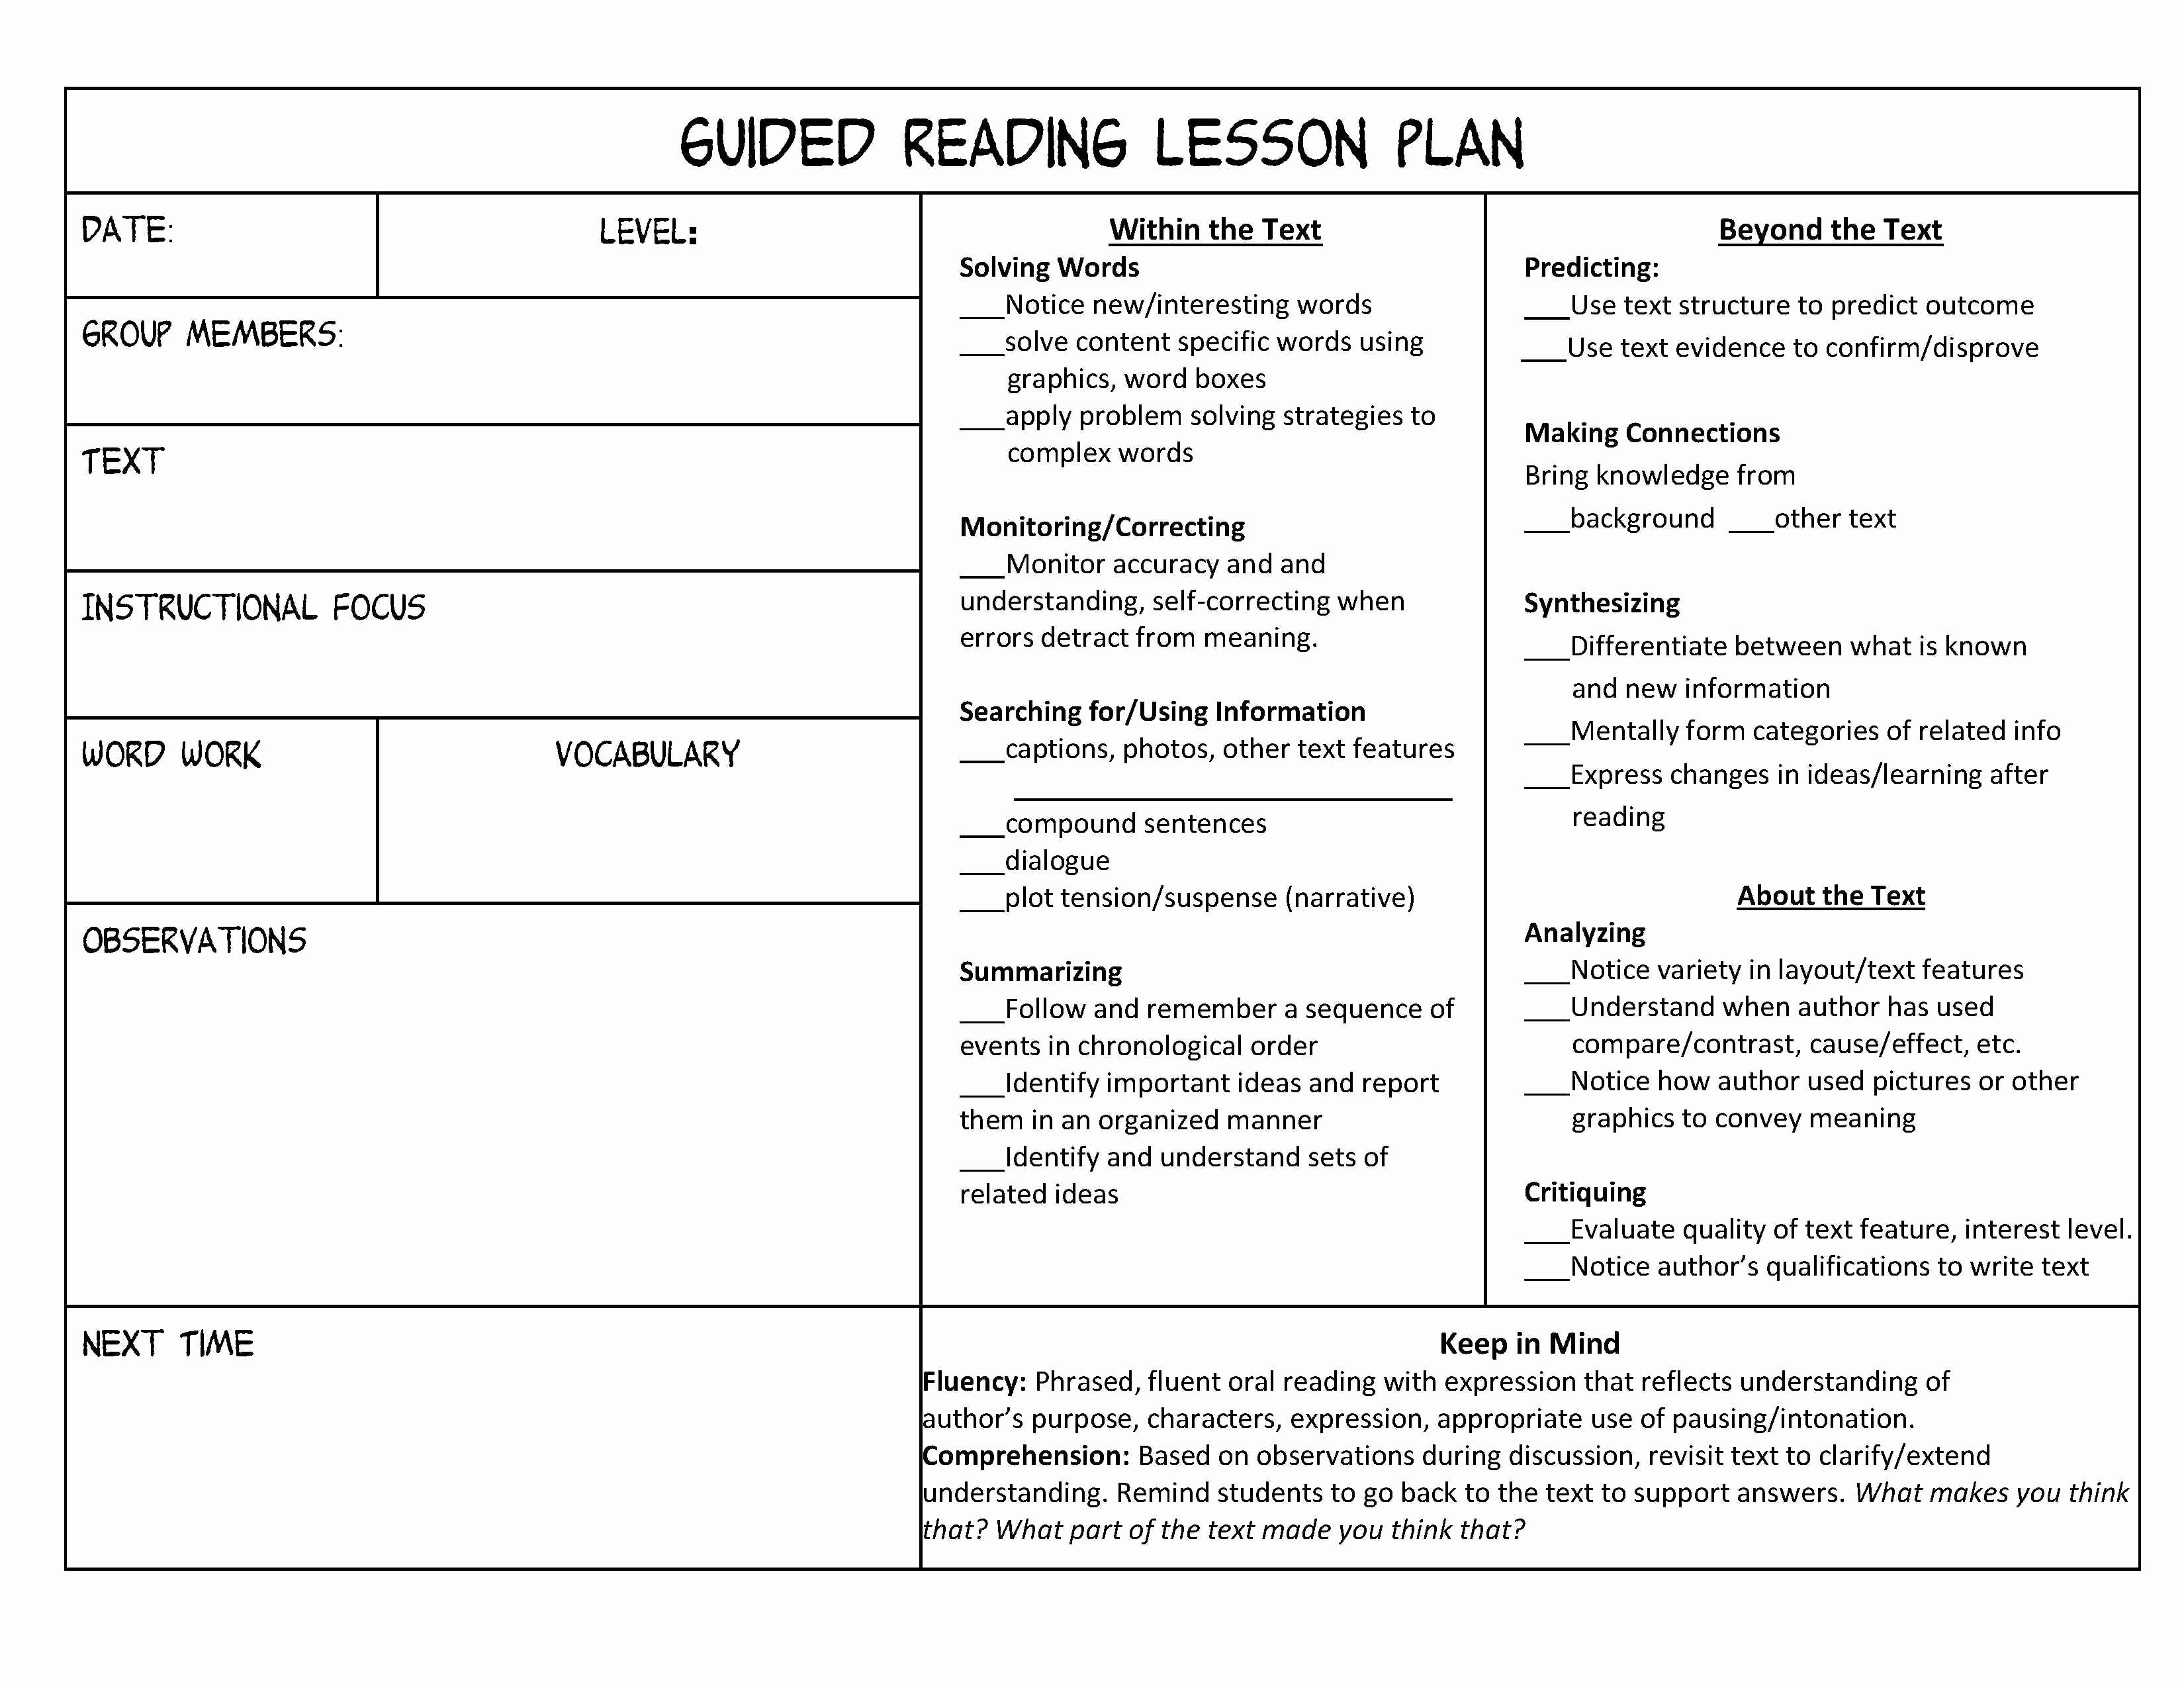 Lesson Plan format Template Fresh Guided Reading organization Made Easy